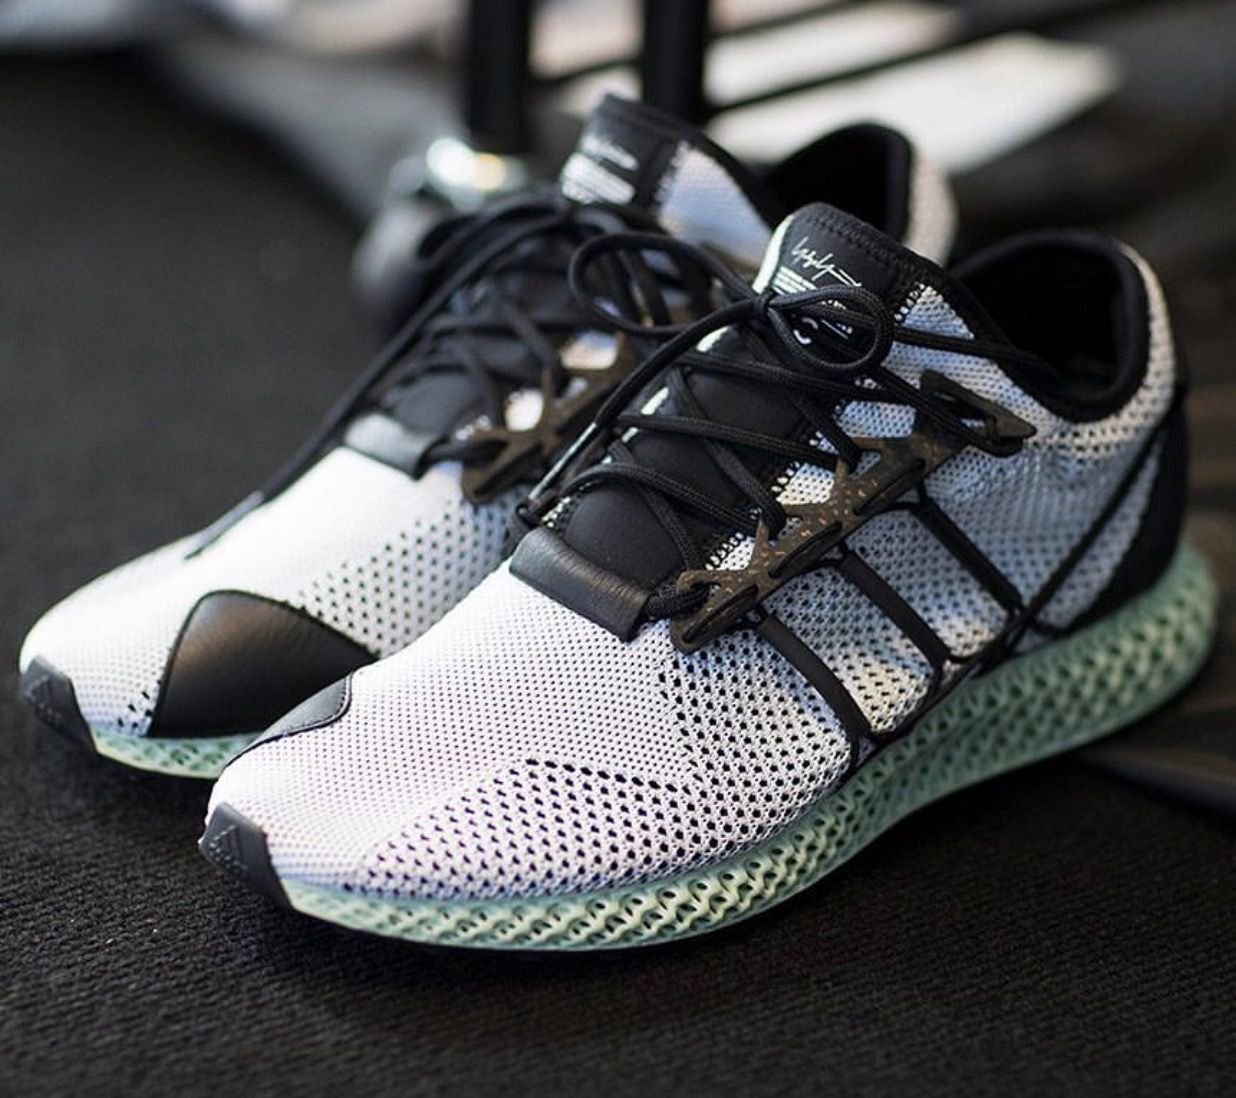 Adidas Y-3 w/ Futurecraft 4D Soles coming 2018